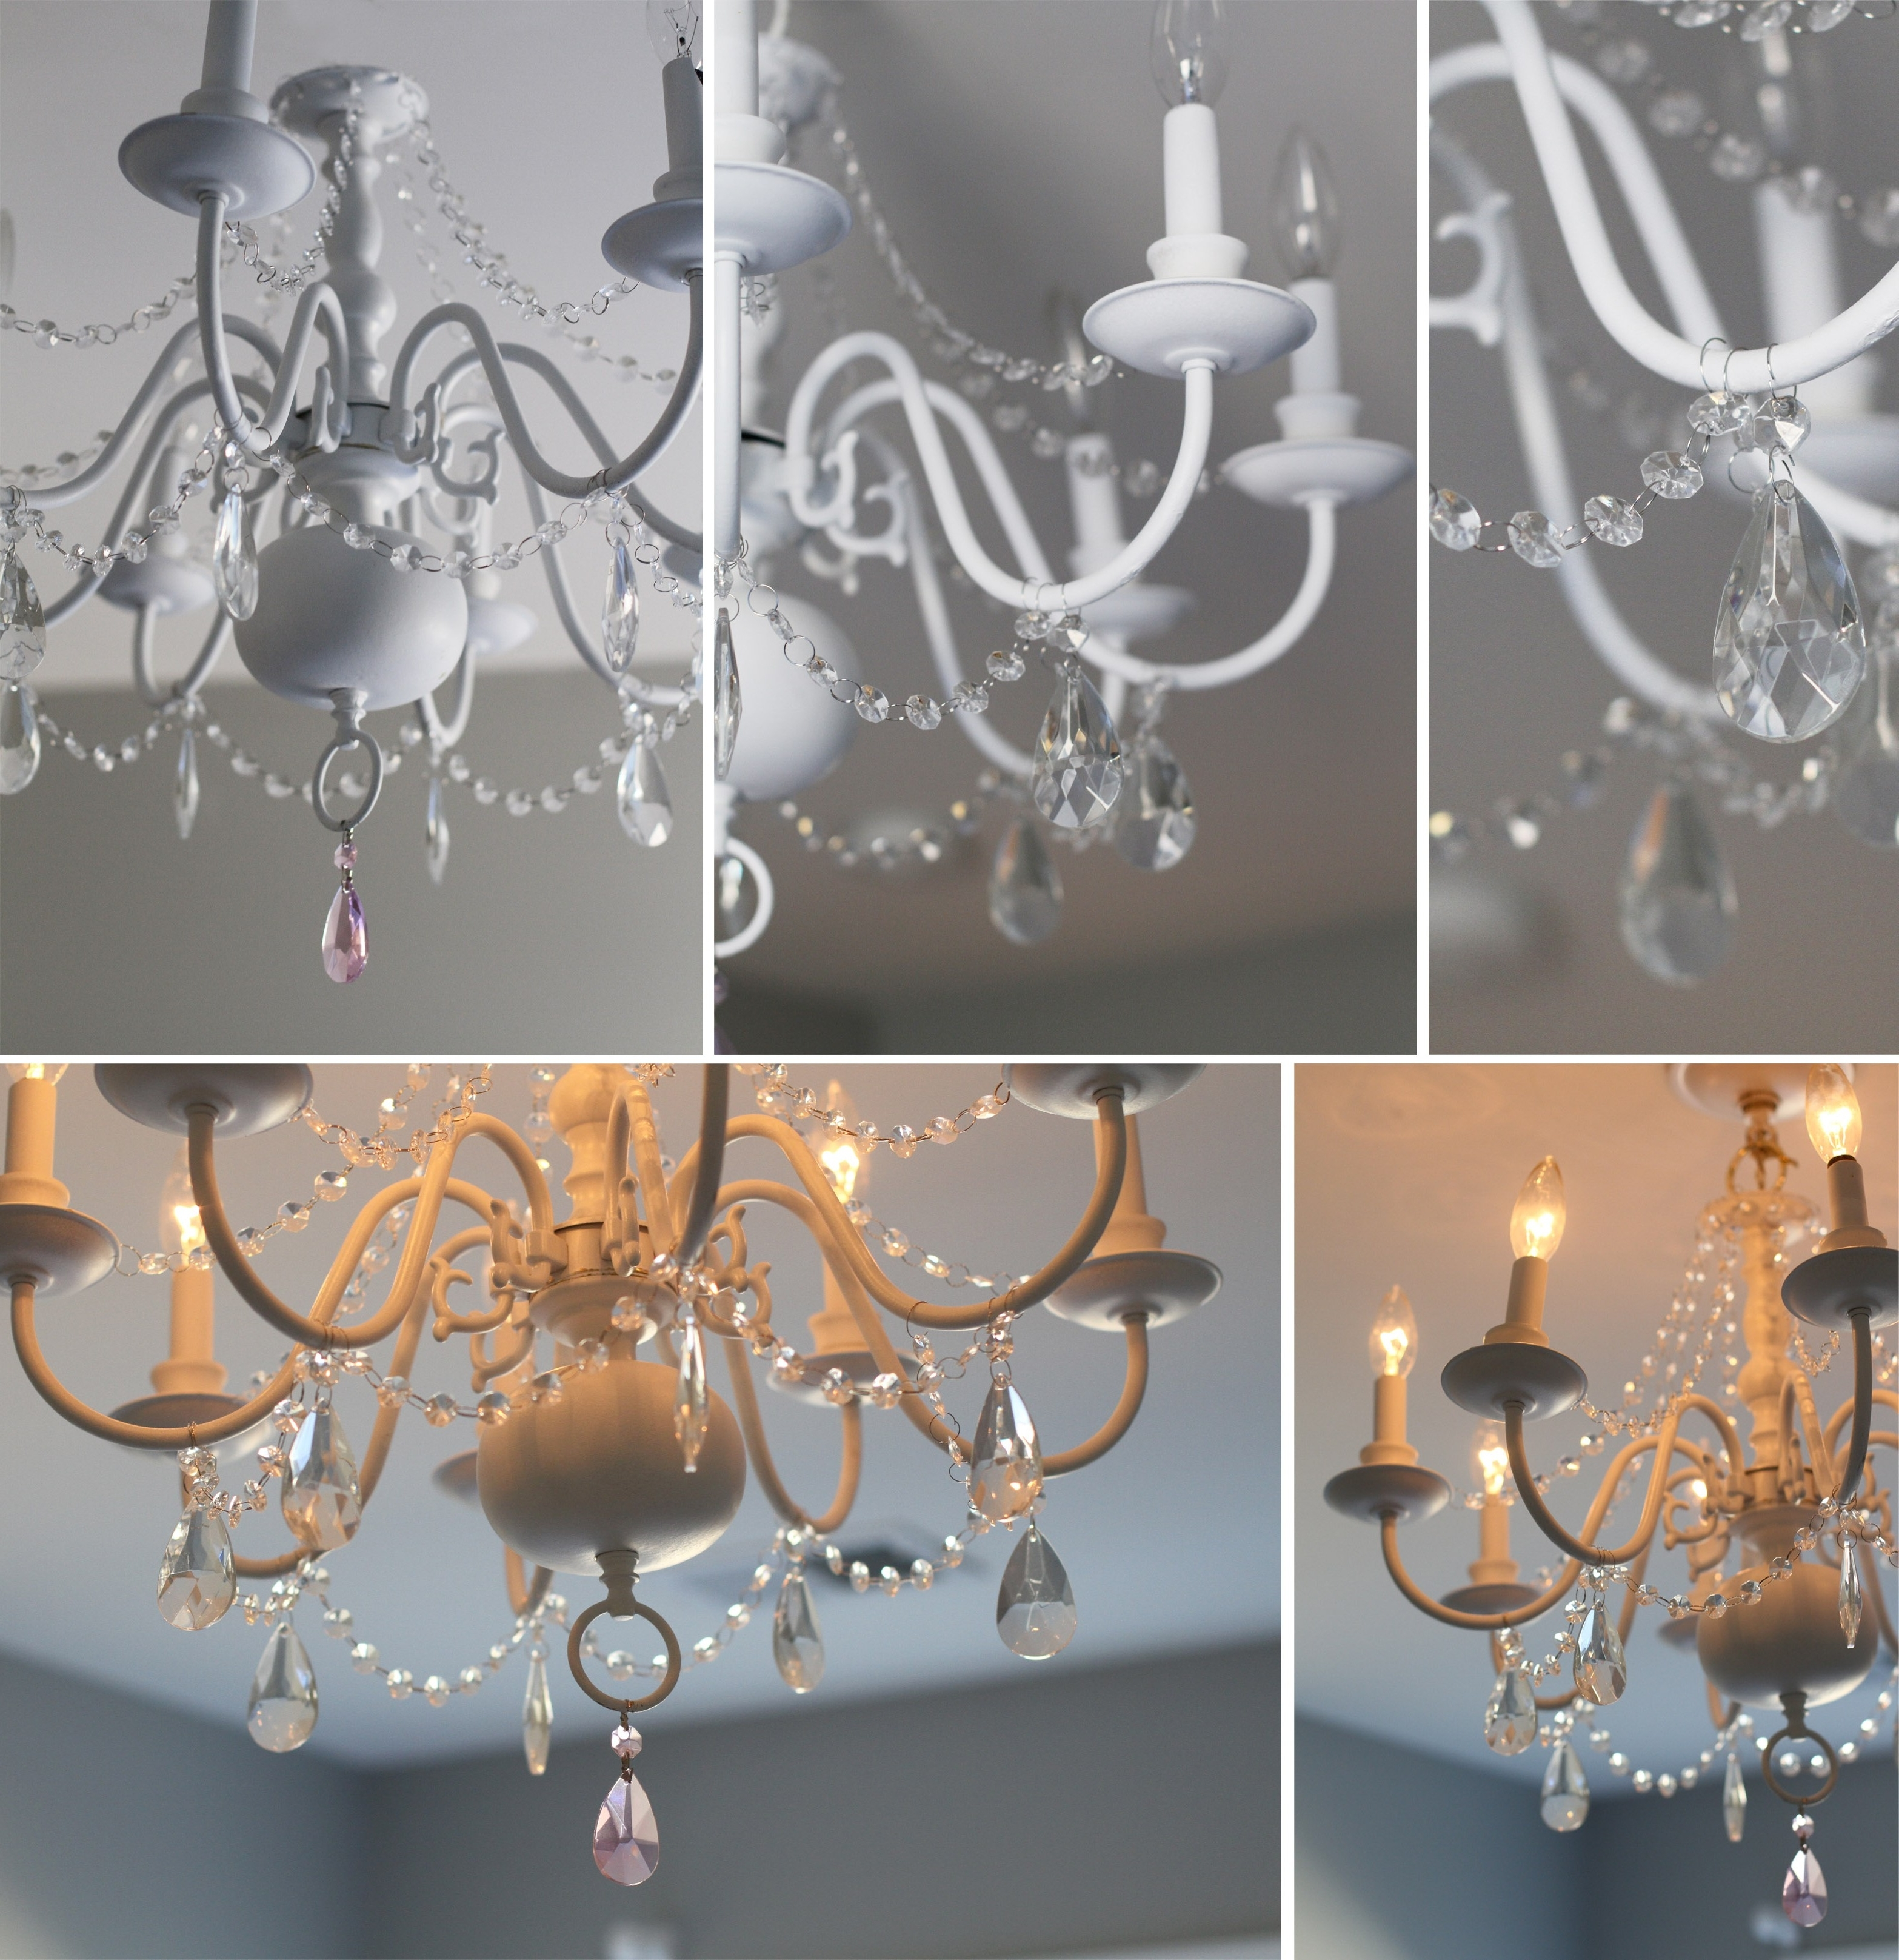 Chandeliers For Kids With Current 56 White Kids Chandelier, Kids White Crystal Chandelier Shades (View 7 of 15)